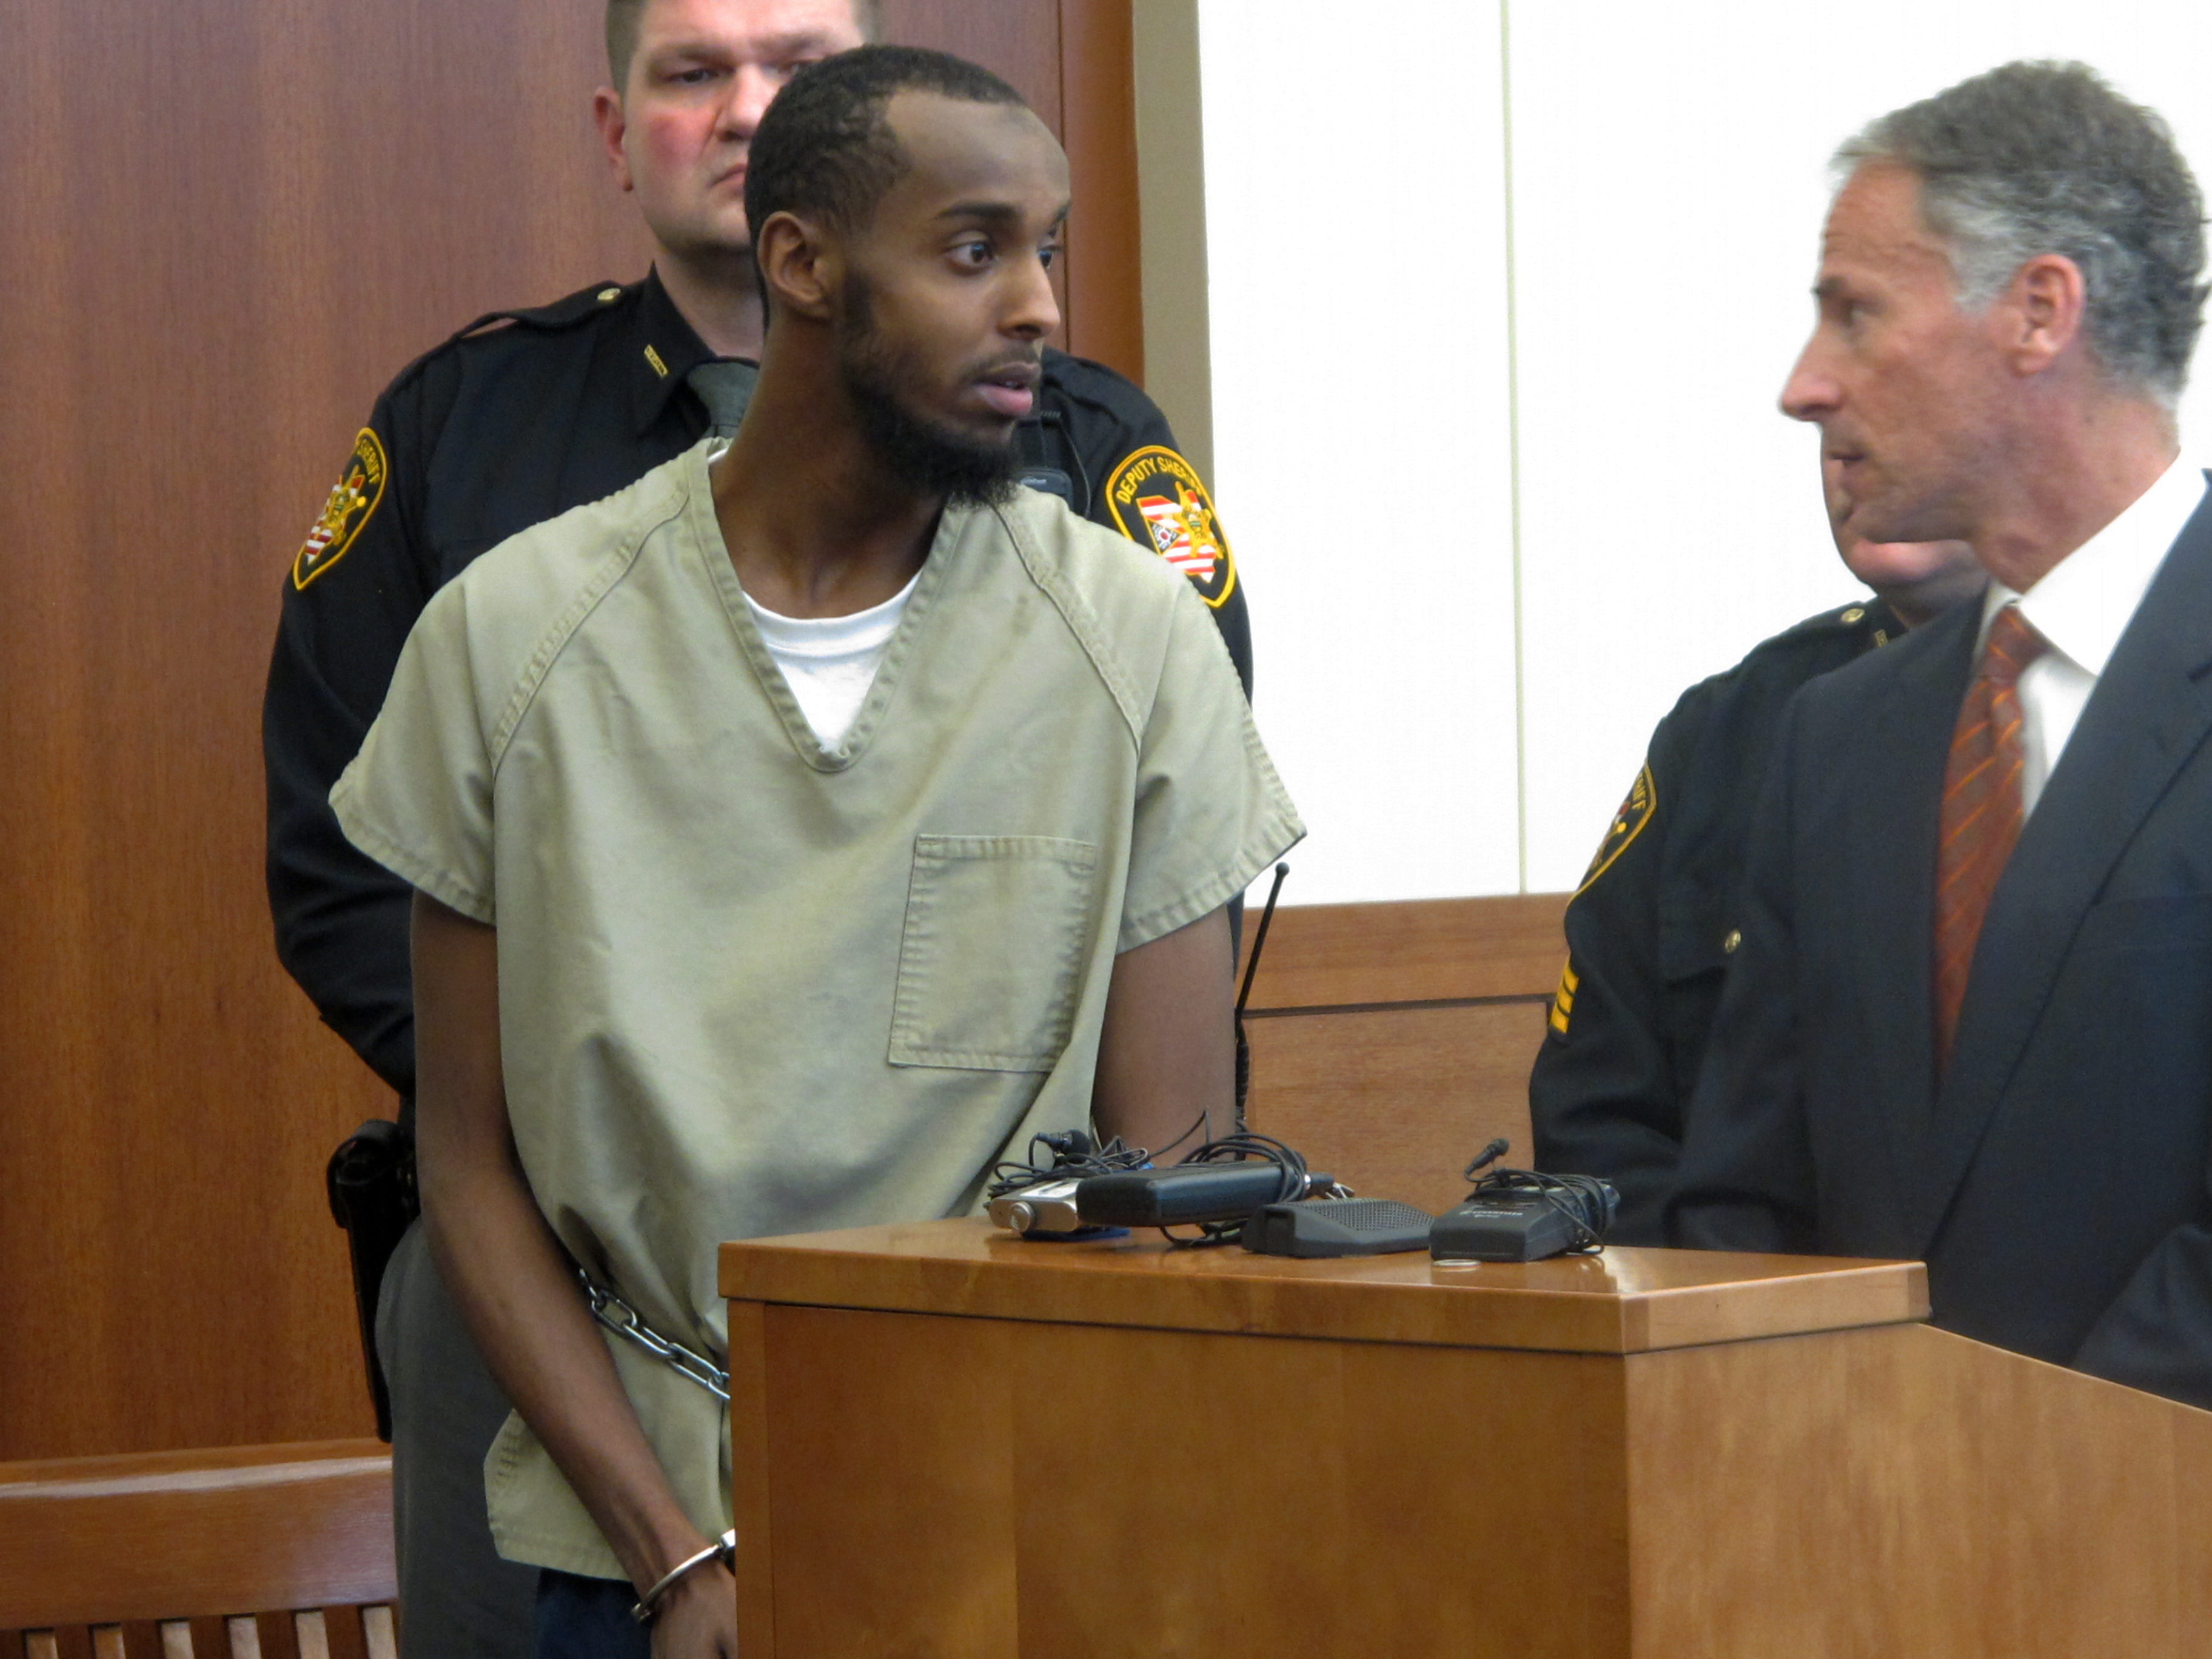 Ohio Man Trained With Islamic Militants In Syria To Be Arraigned On Federal  Terrorism Charges  Cbs News